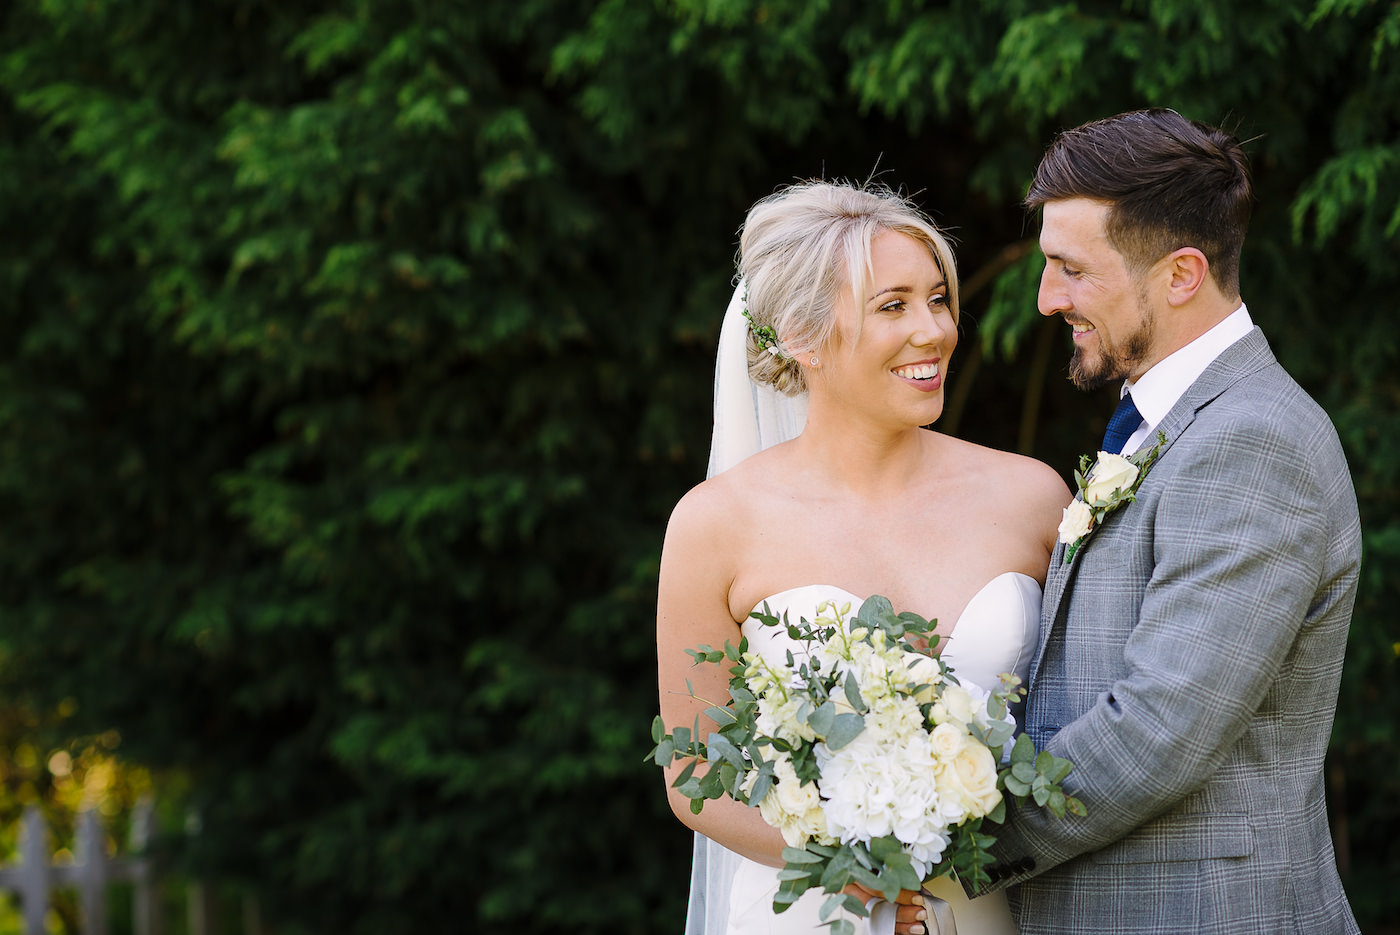 Bride and groom portrait photo in the garden at Russets Country House